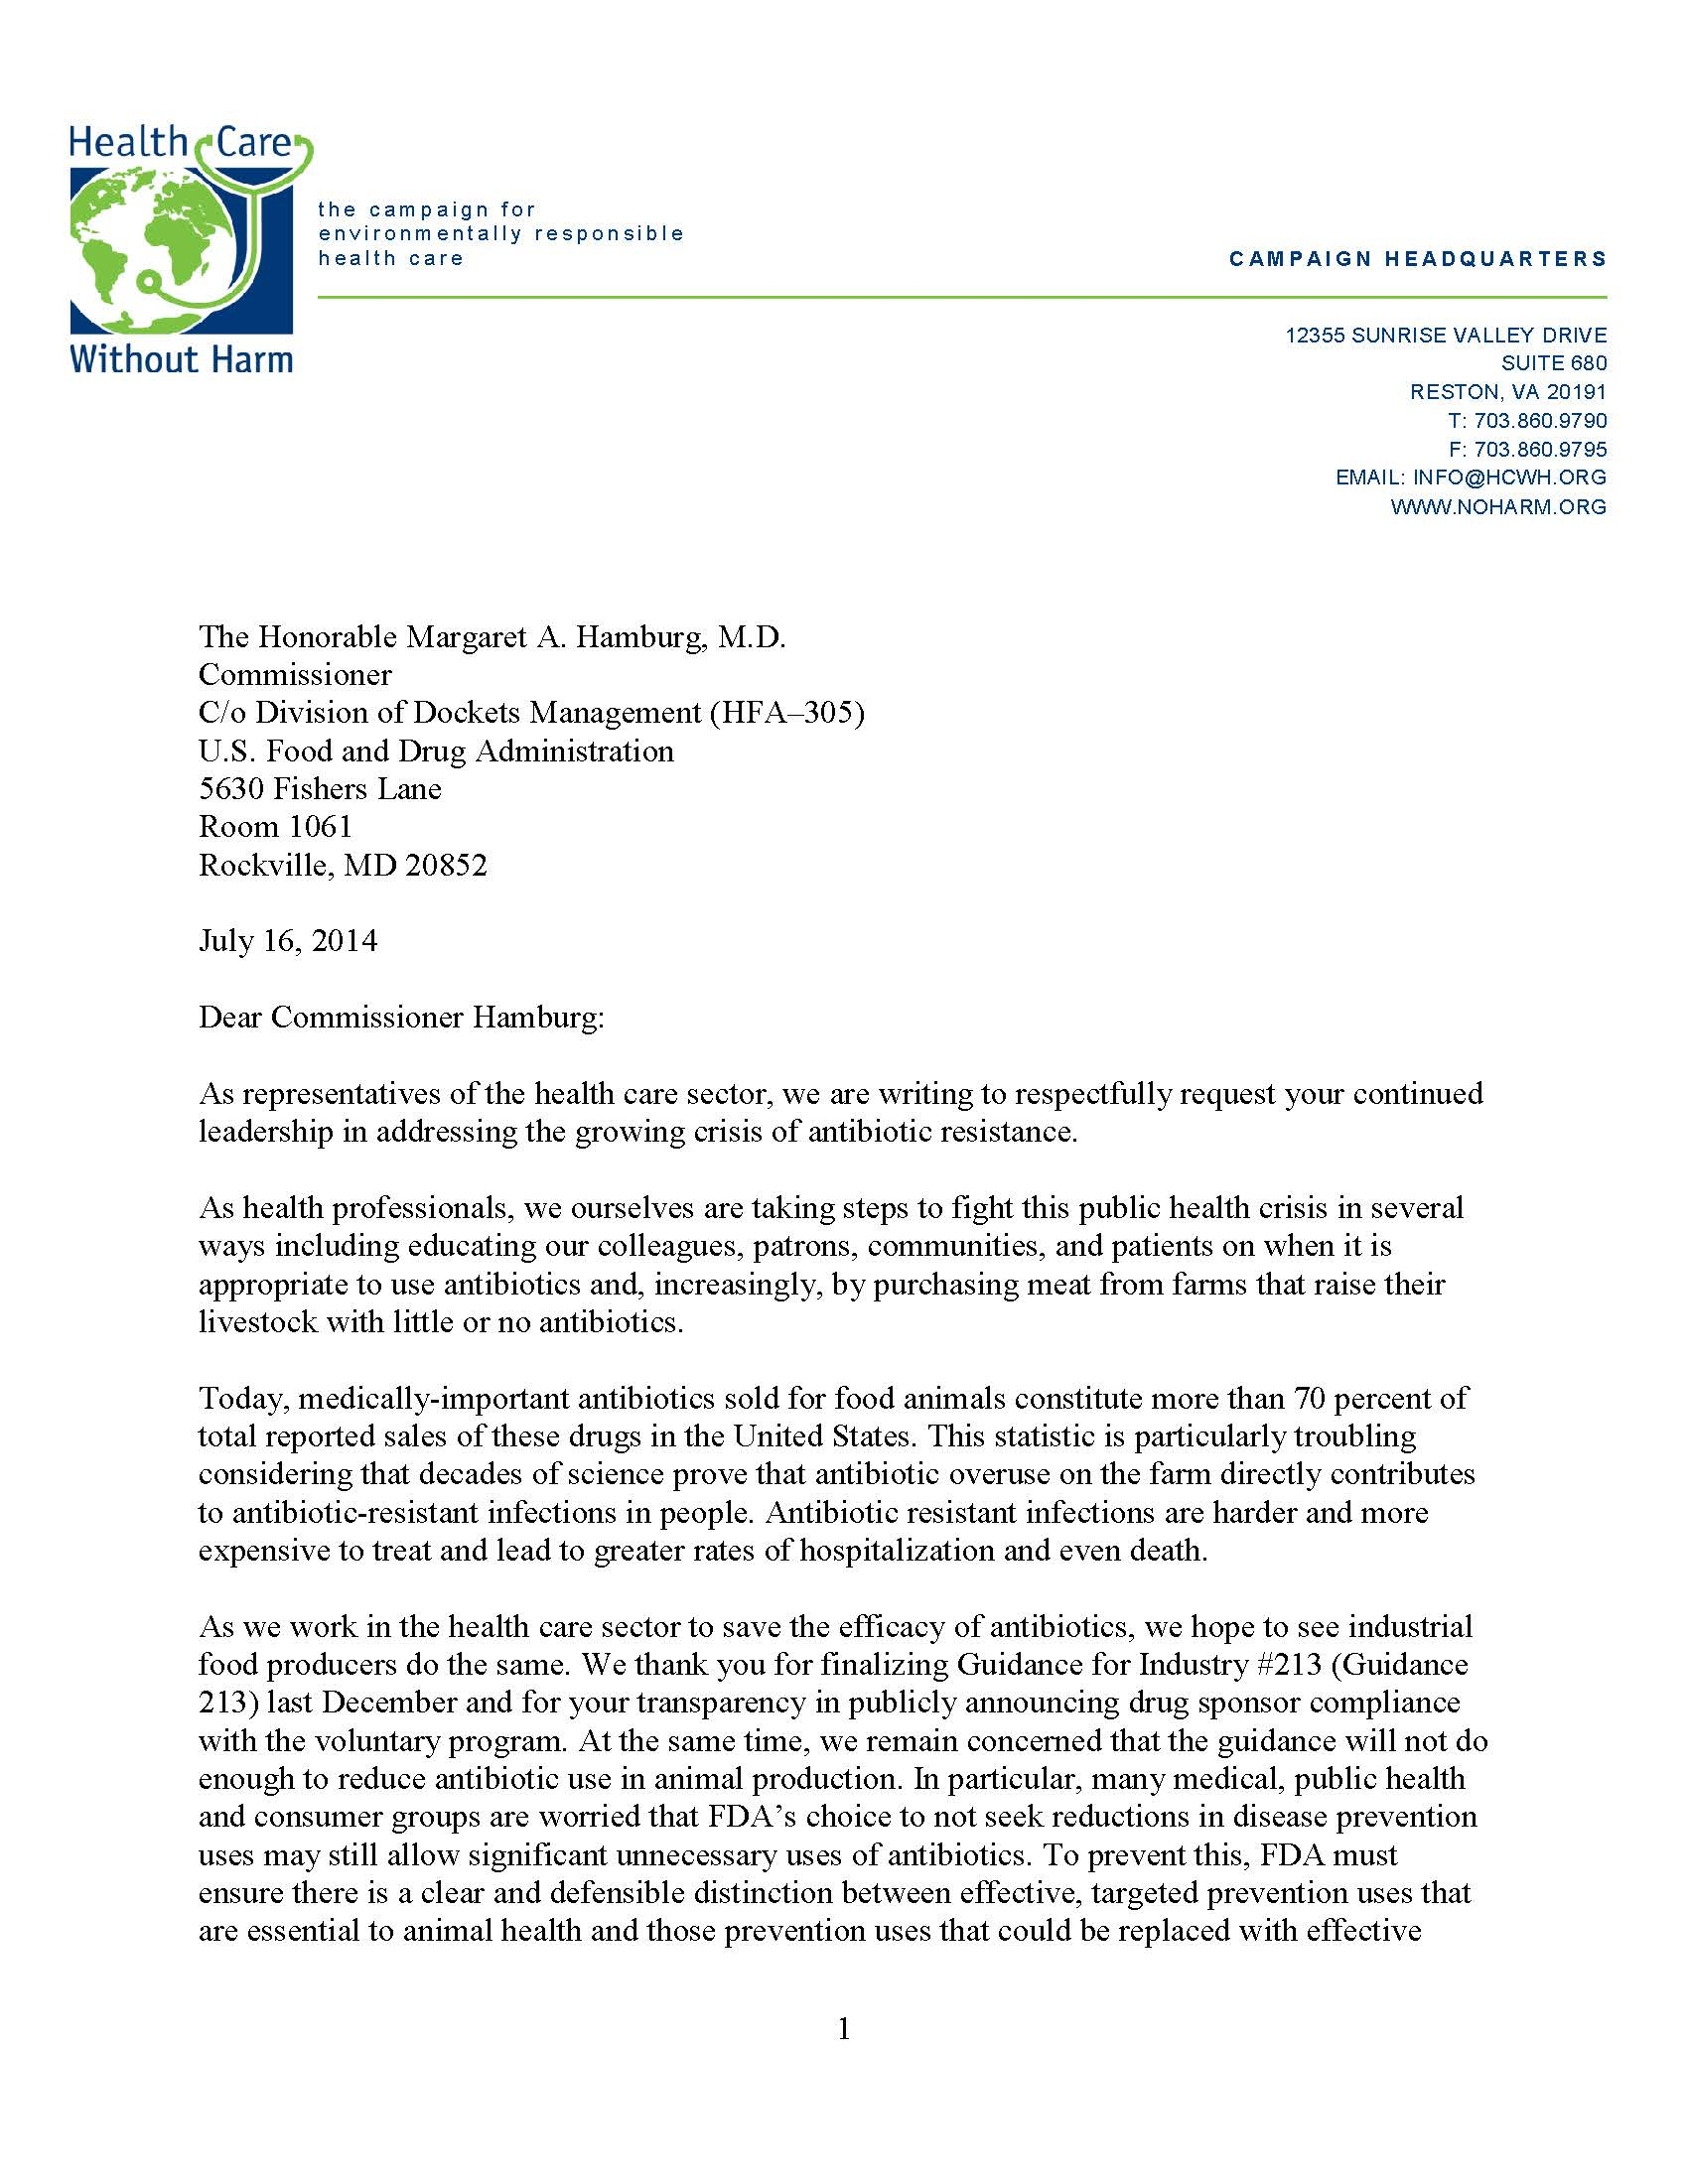 Letter to FDA Commissioner